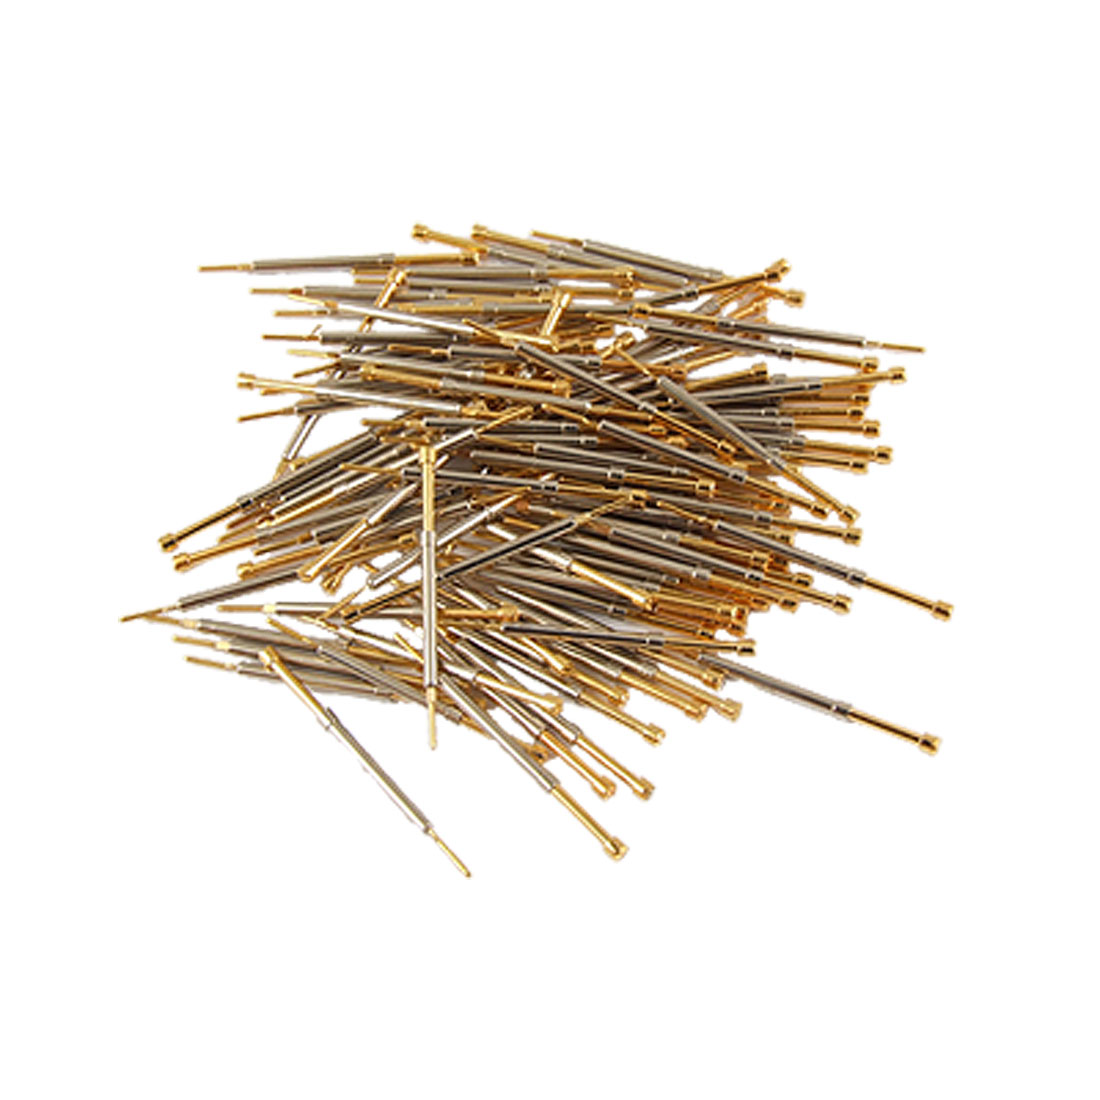 100 Pcs 1.1mm Dia Serrated Tip Push Spring Test Probes